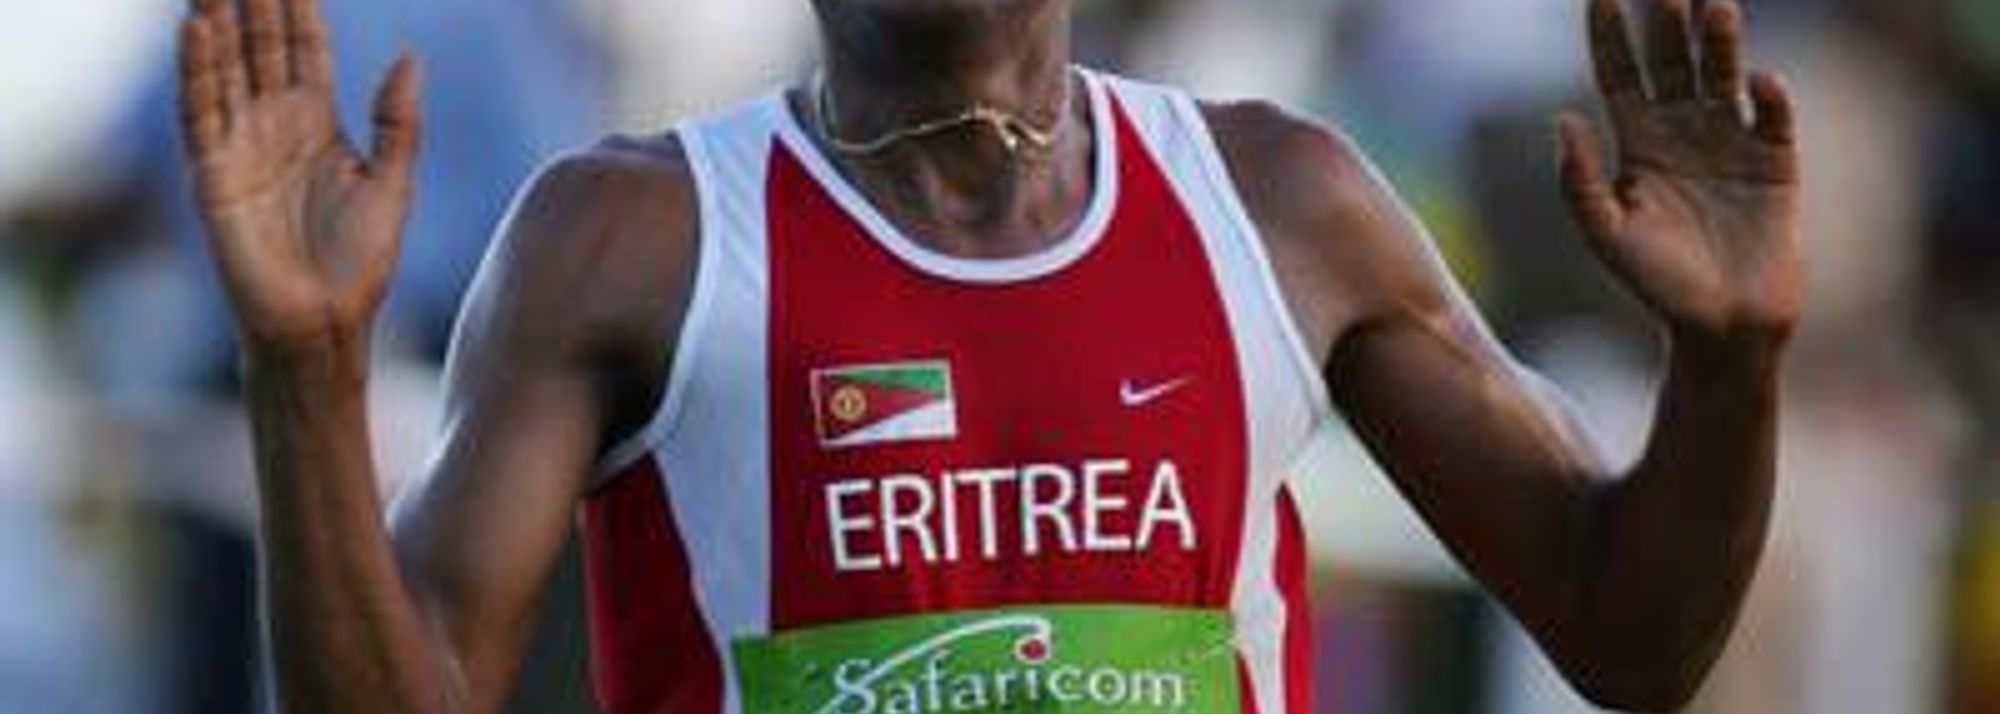 Somewhat lost in the shock of Kenenisa Bekele's departure during the waning moments of yesterday's men's 12 km race at the 35th IAAF World Cross Country Championships, was the power, poise and determination displayed by Zersenay Tadesse, the man who succeeded him as World champion.